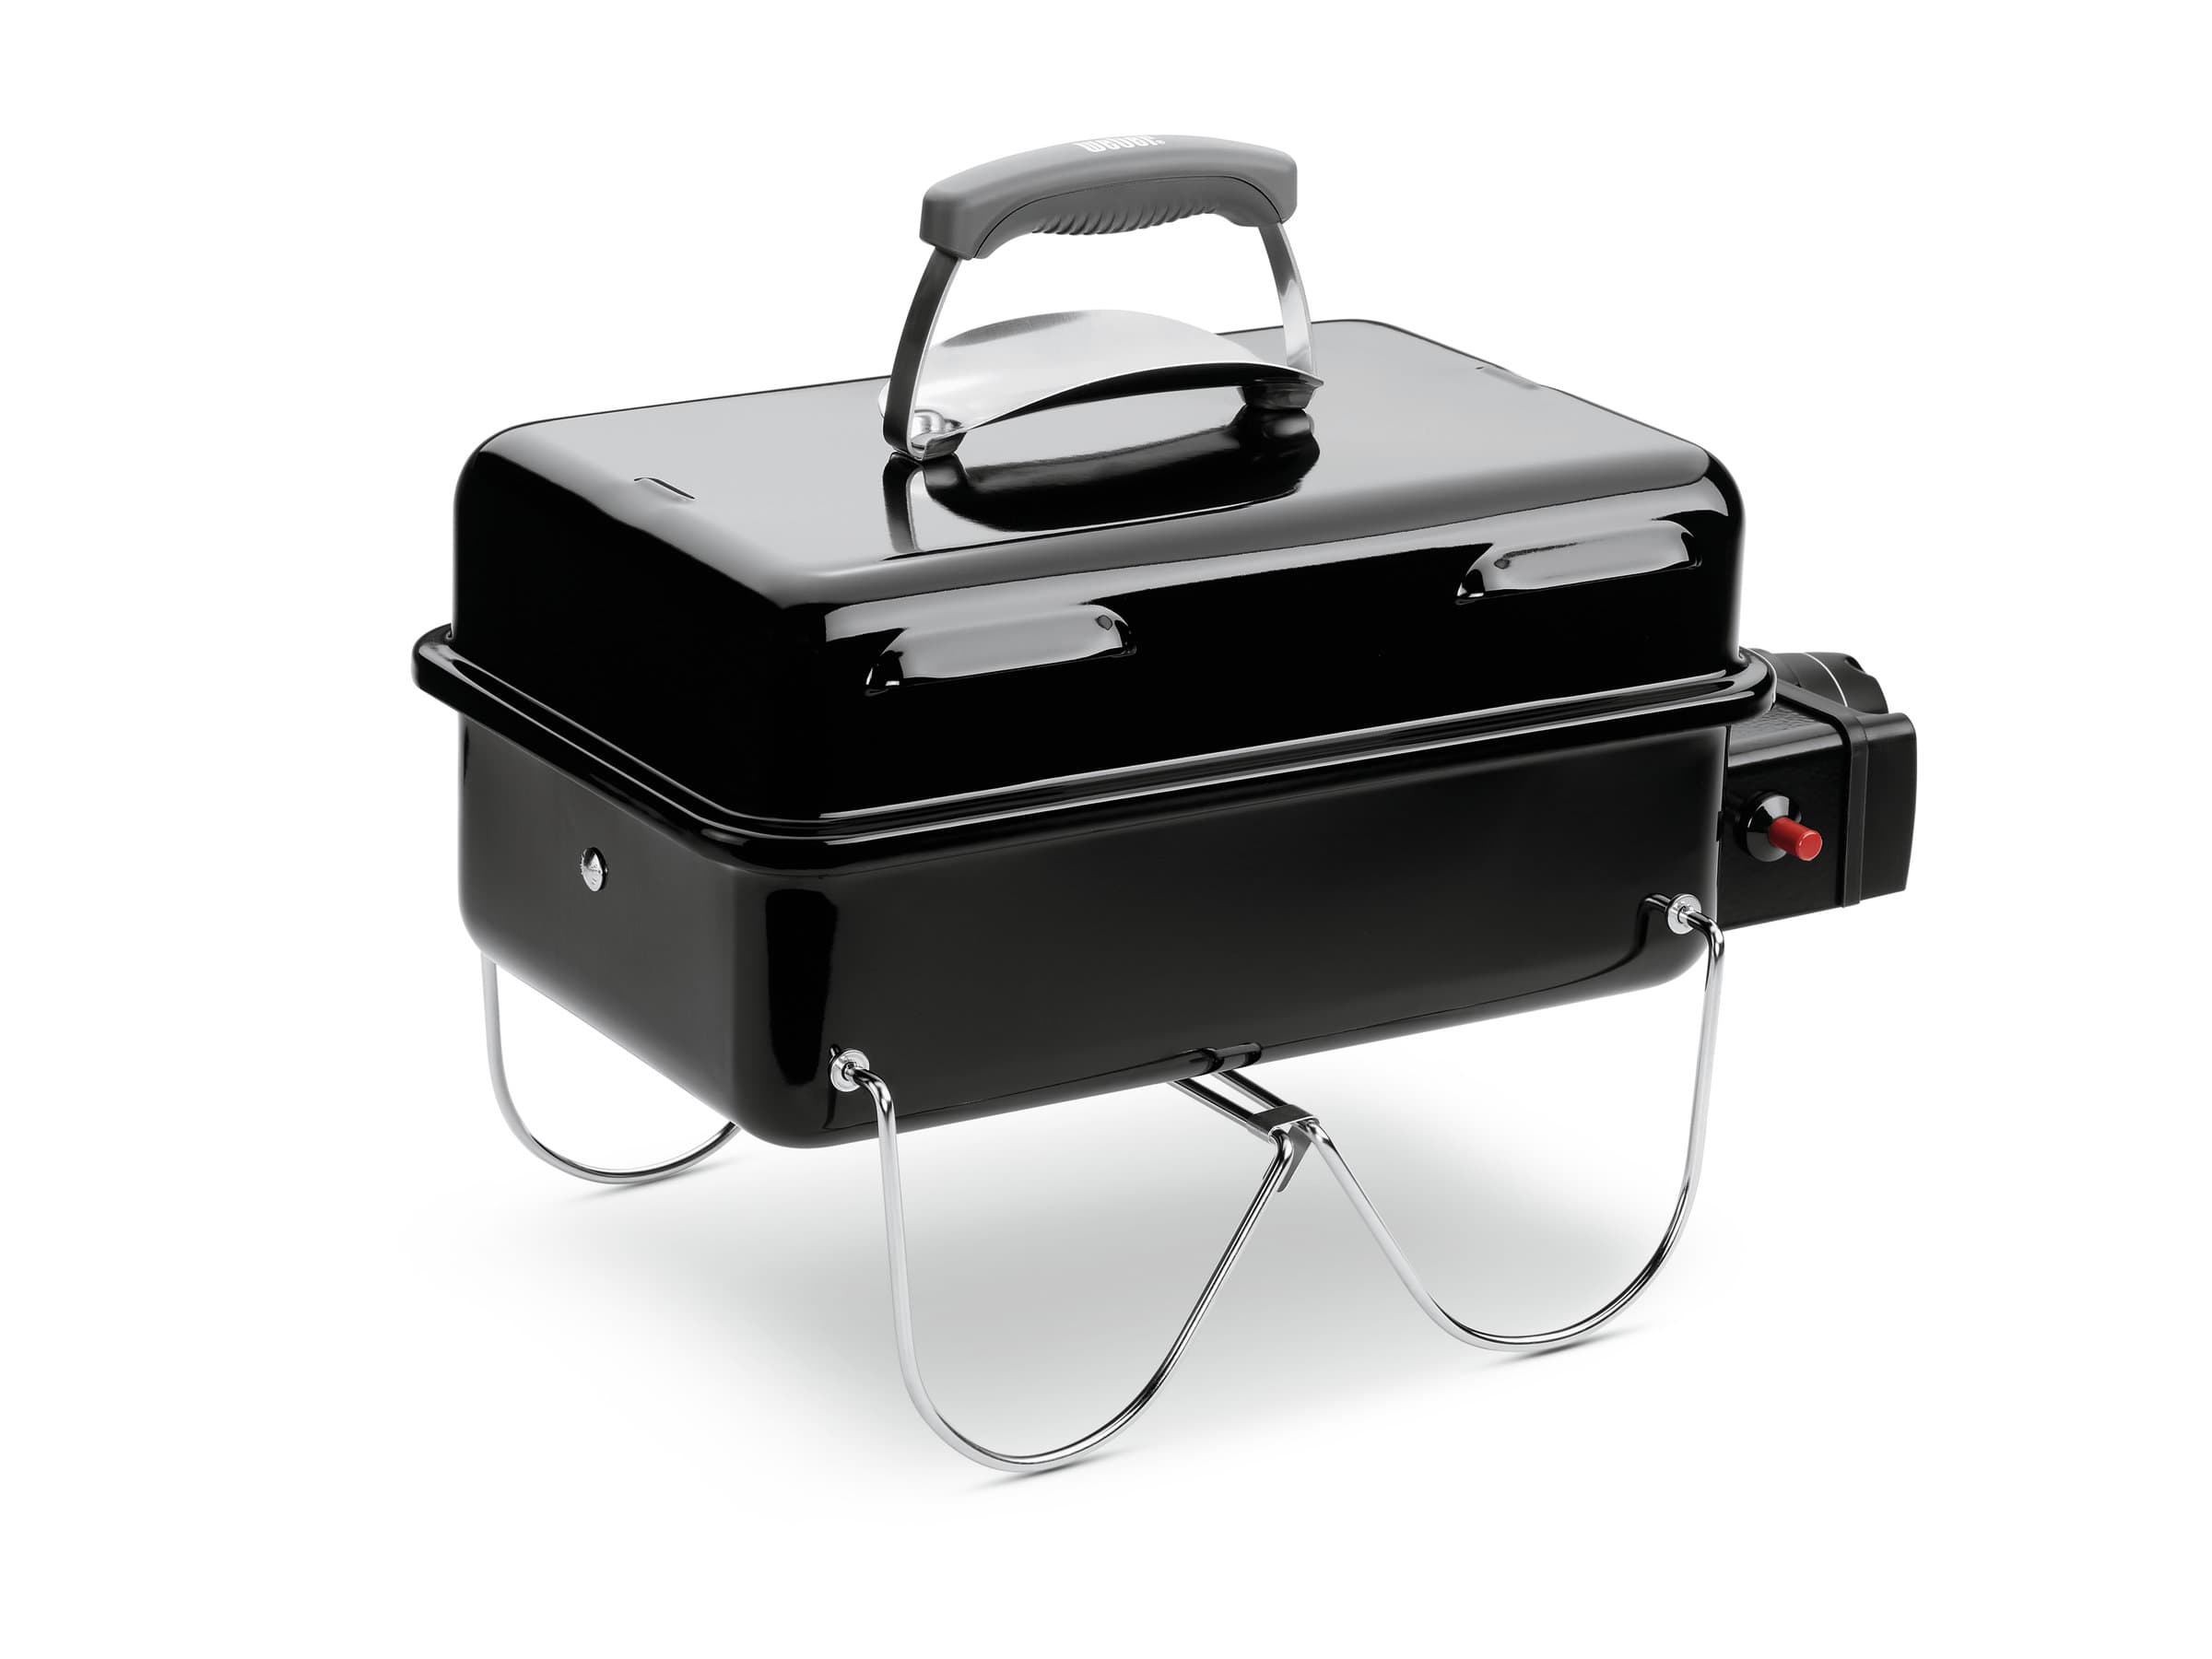 weber mobiler gasgrill go anywhere migros. Black Bedroom Furniture Sets. Home Design Ideas